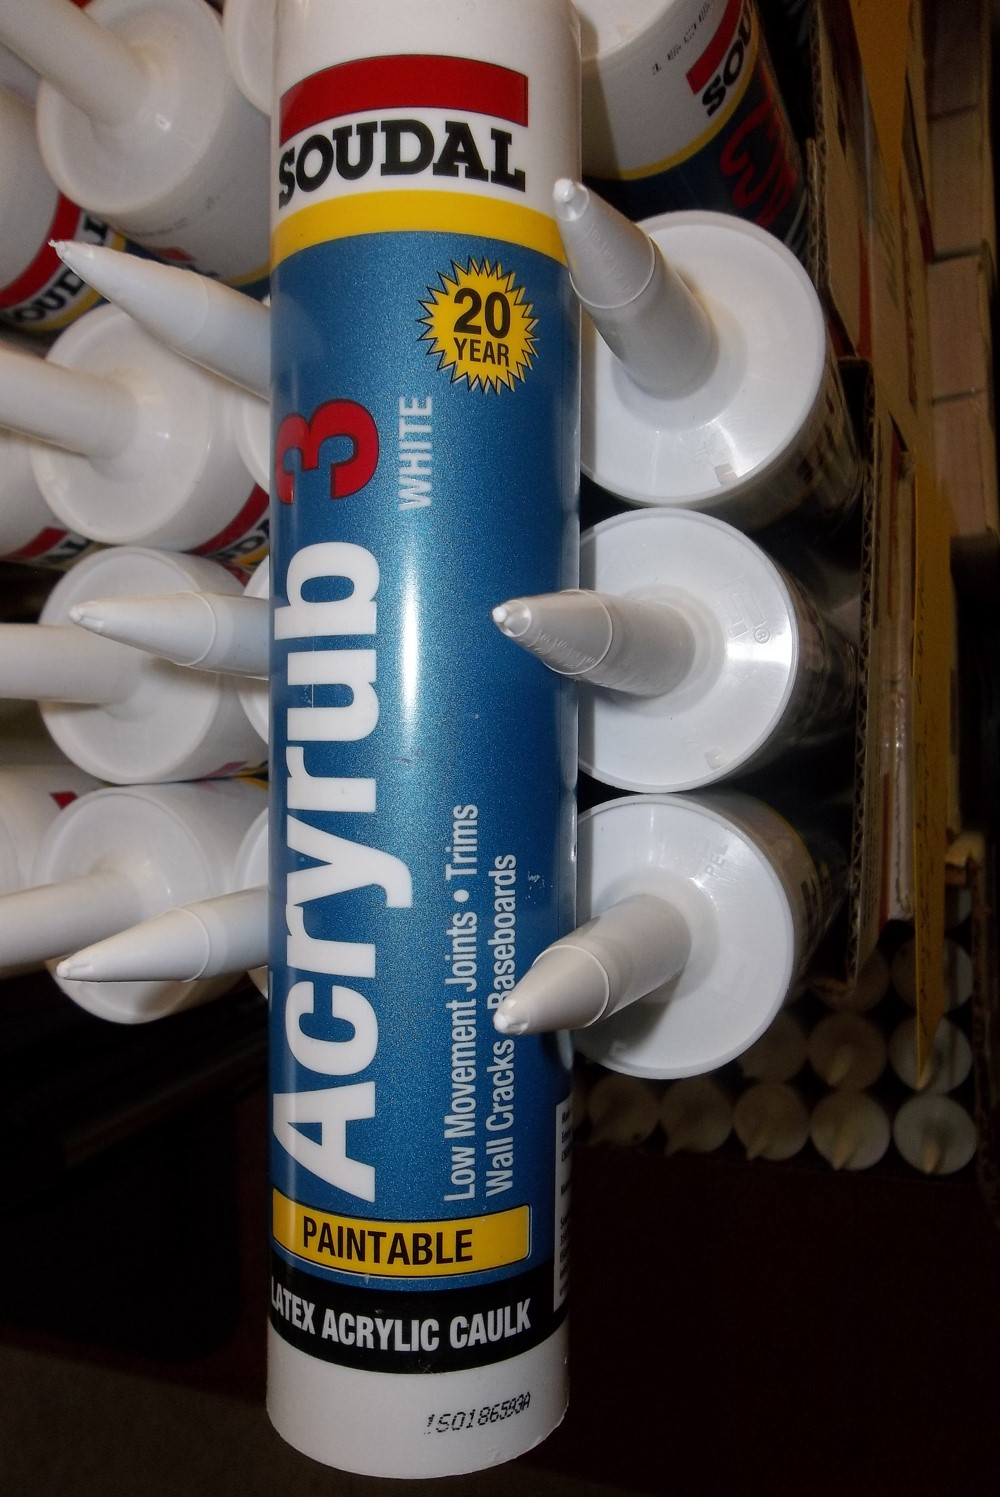 Latex Acrylic White Caulk $1.67 - paintable